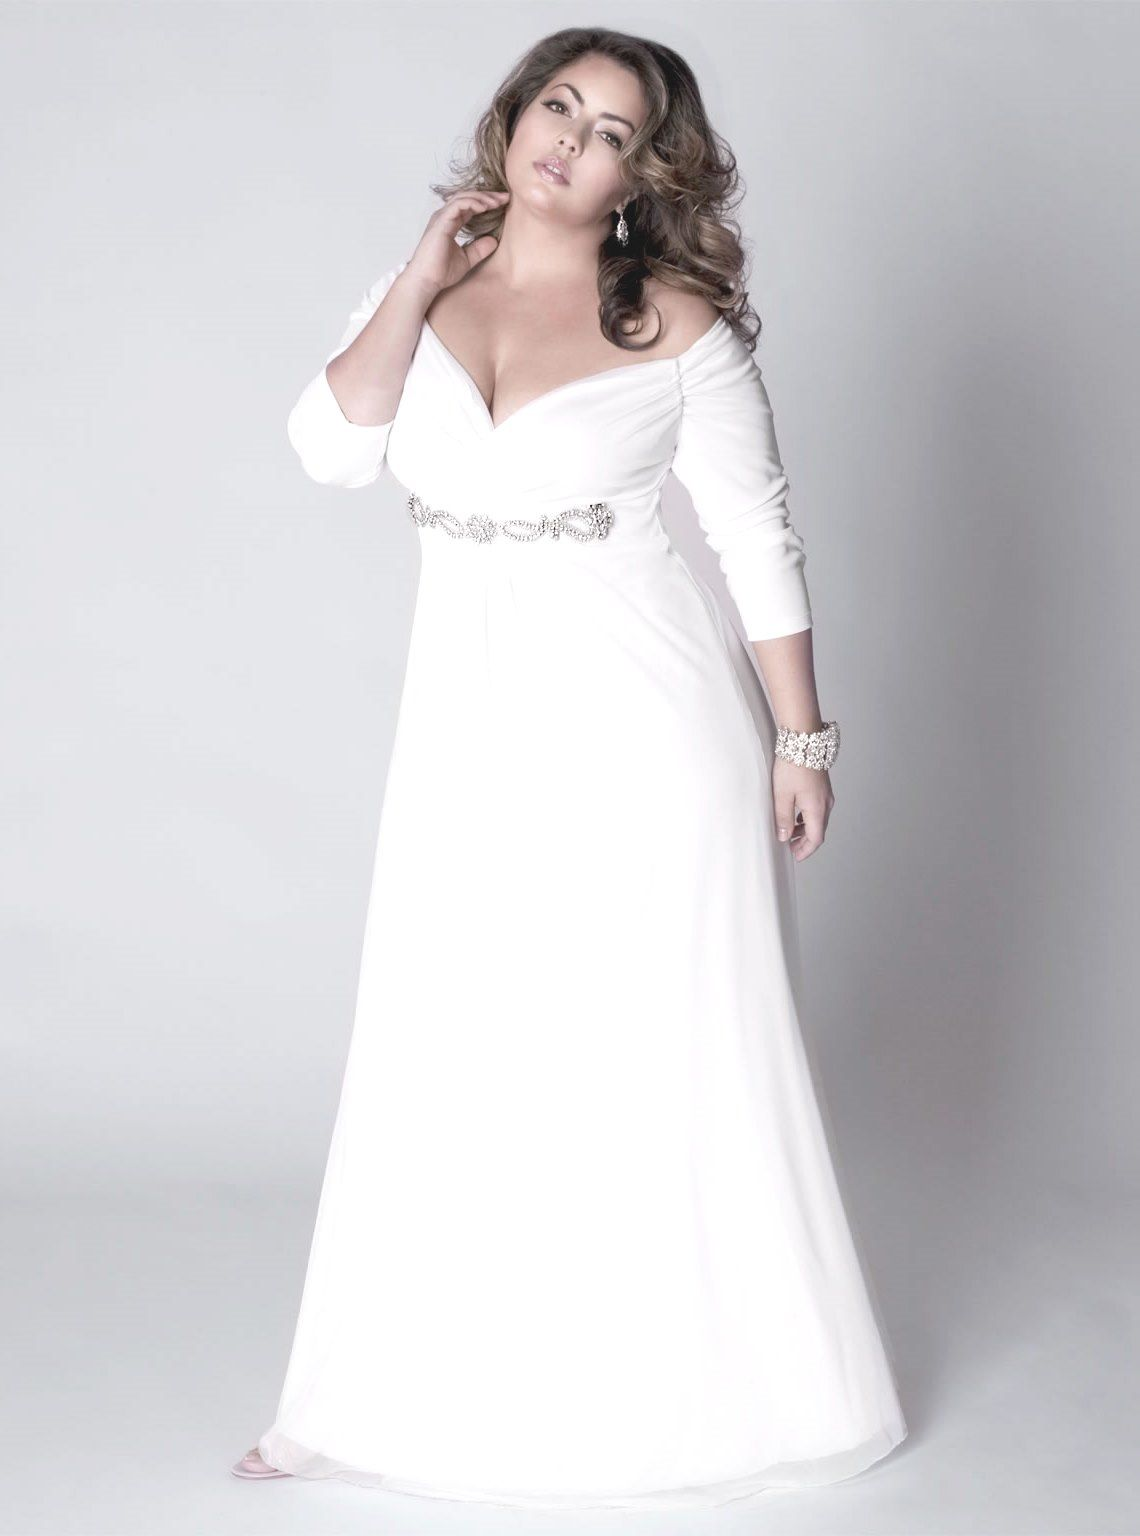 15 plus size wedding dresses to make you look like queen wedding plus size wedding dress with sleeves ombrellifo Choice Image